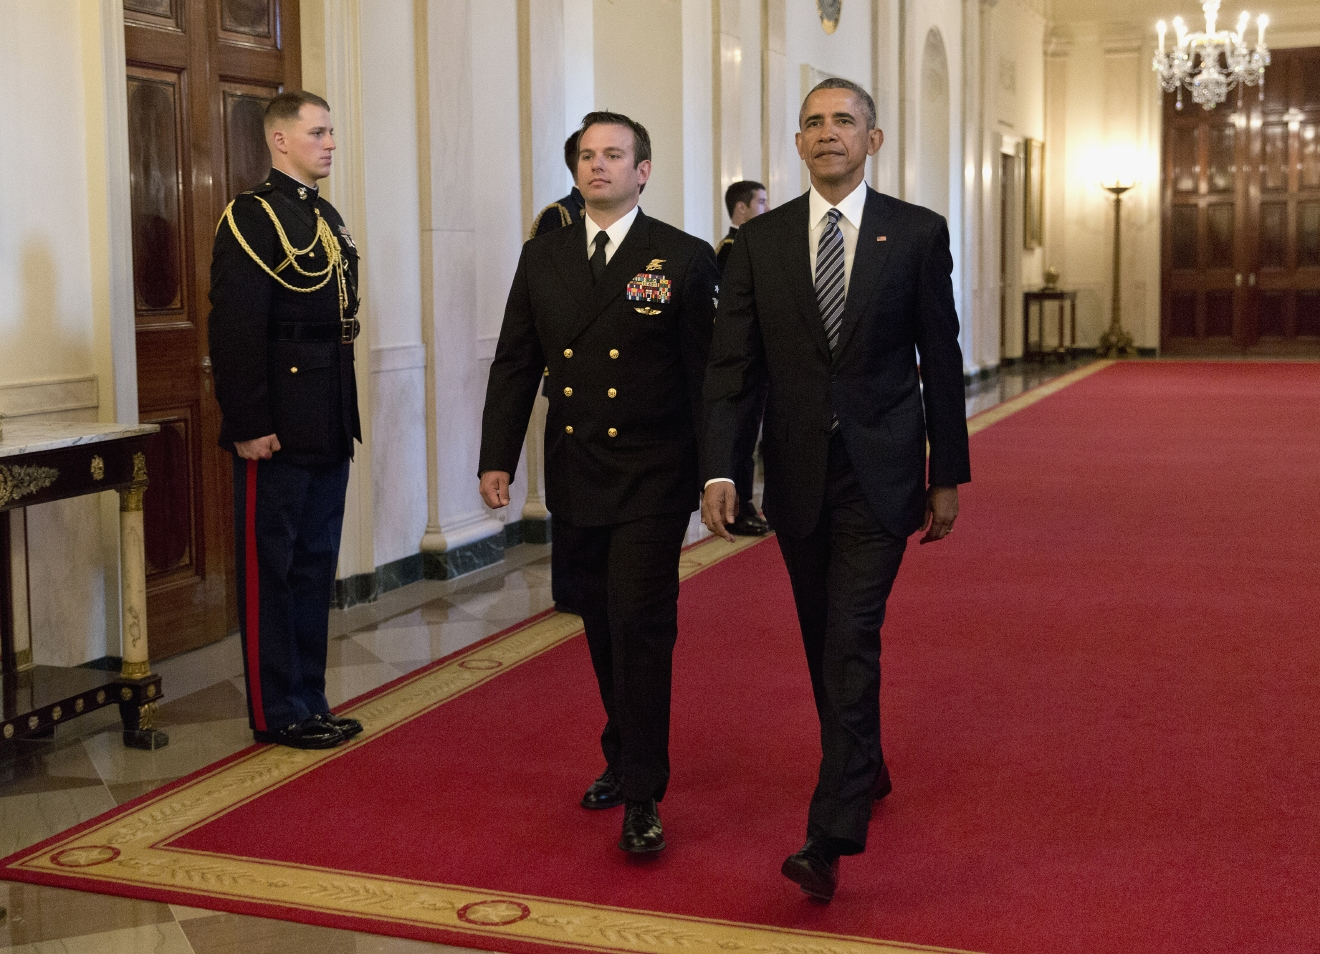 President Barack Obama and Senior Chief Special Warfare Operator Edward Byers arrive for a ceremony in the East Room of the White House in Washington, Monday, Feb. 29, 2016, where the president presented Byers with the Medal of Honor. U.S. Navy. Senior Chief Byers receives the Medal of Honor for his courageous actions while serving as part of a team that rescued an American civilian being held hostage in Afghanistan on December 8-9, 2012. (AP Photo/Carolyn Kaster)